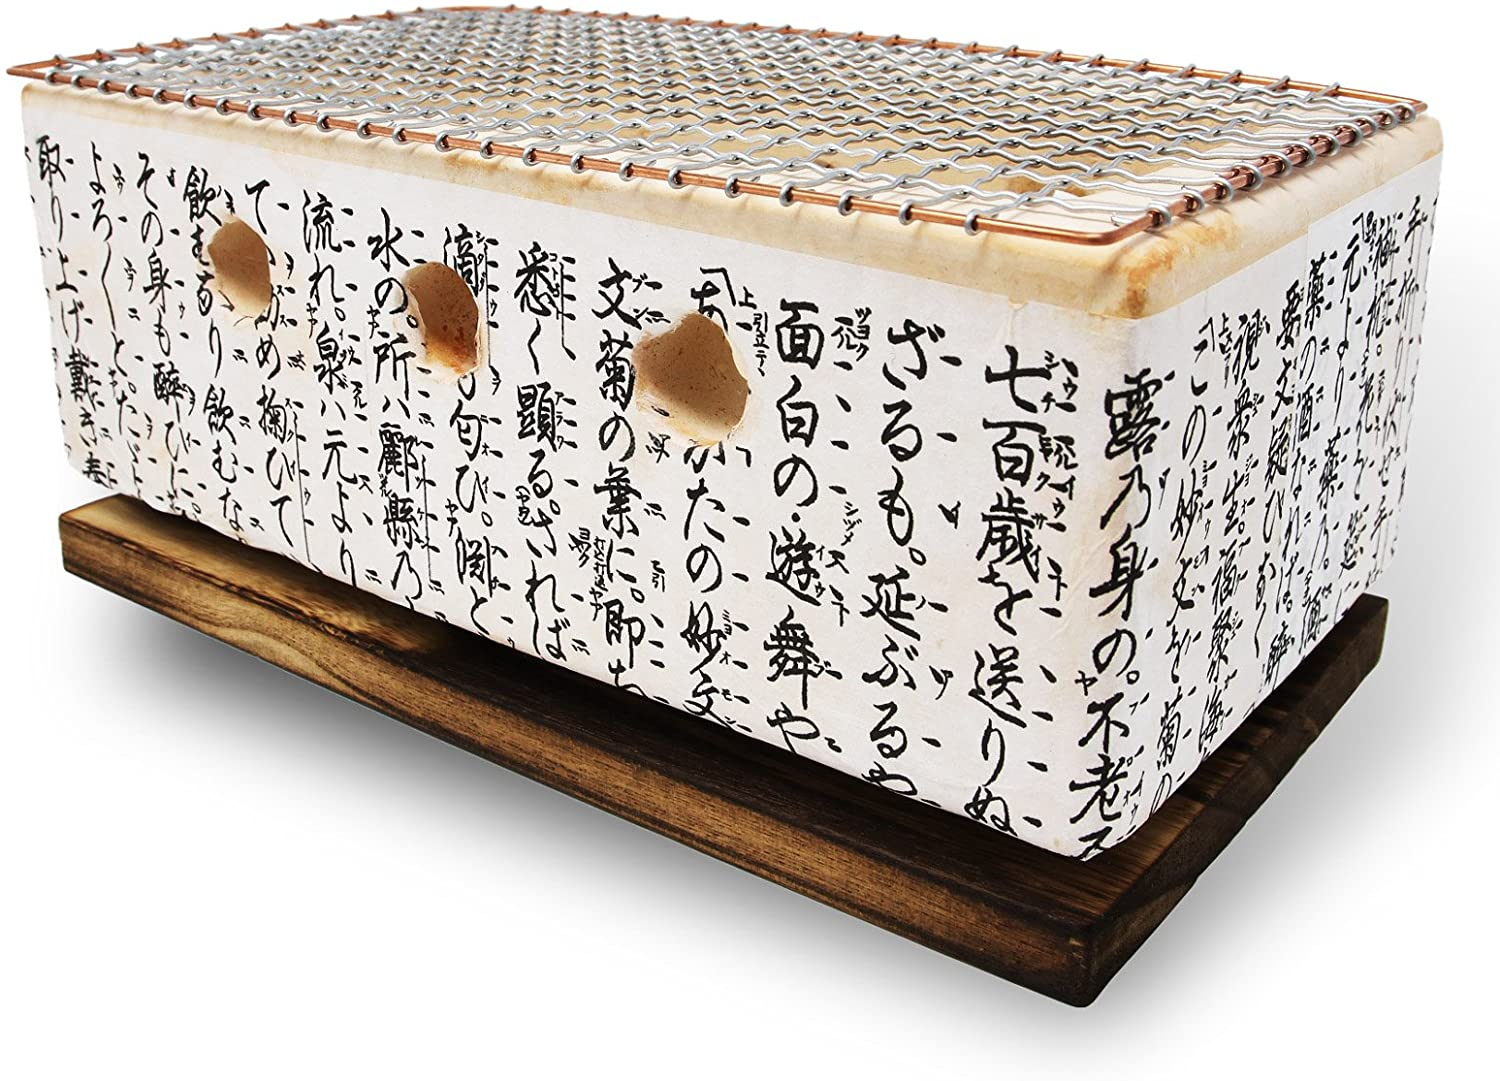 Best Japanese shichirin ceramic tabletop grill- Noto Dia Table-top Charcoal Grill